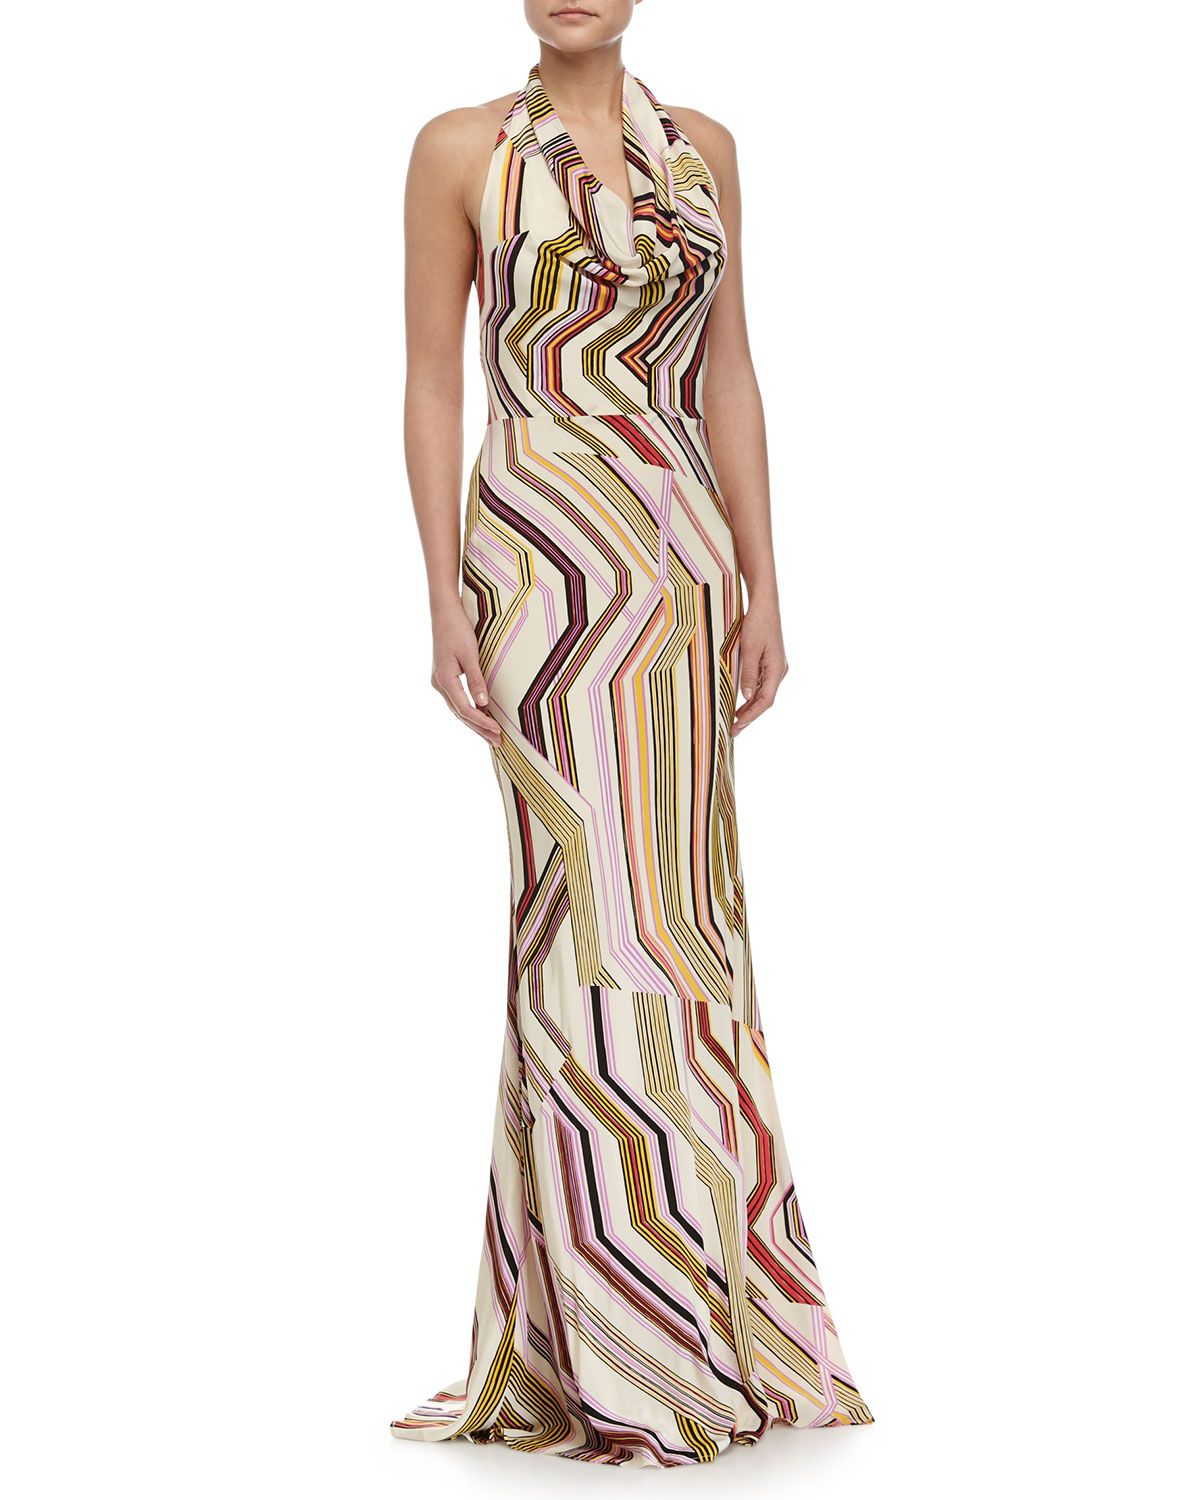 Neiman marcus dresses for weddings  Carolina Herrera GeometricPrint Mermaid Gown Multi Colors Womenus